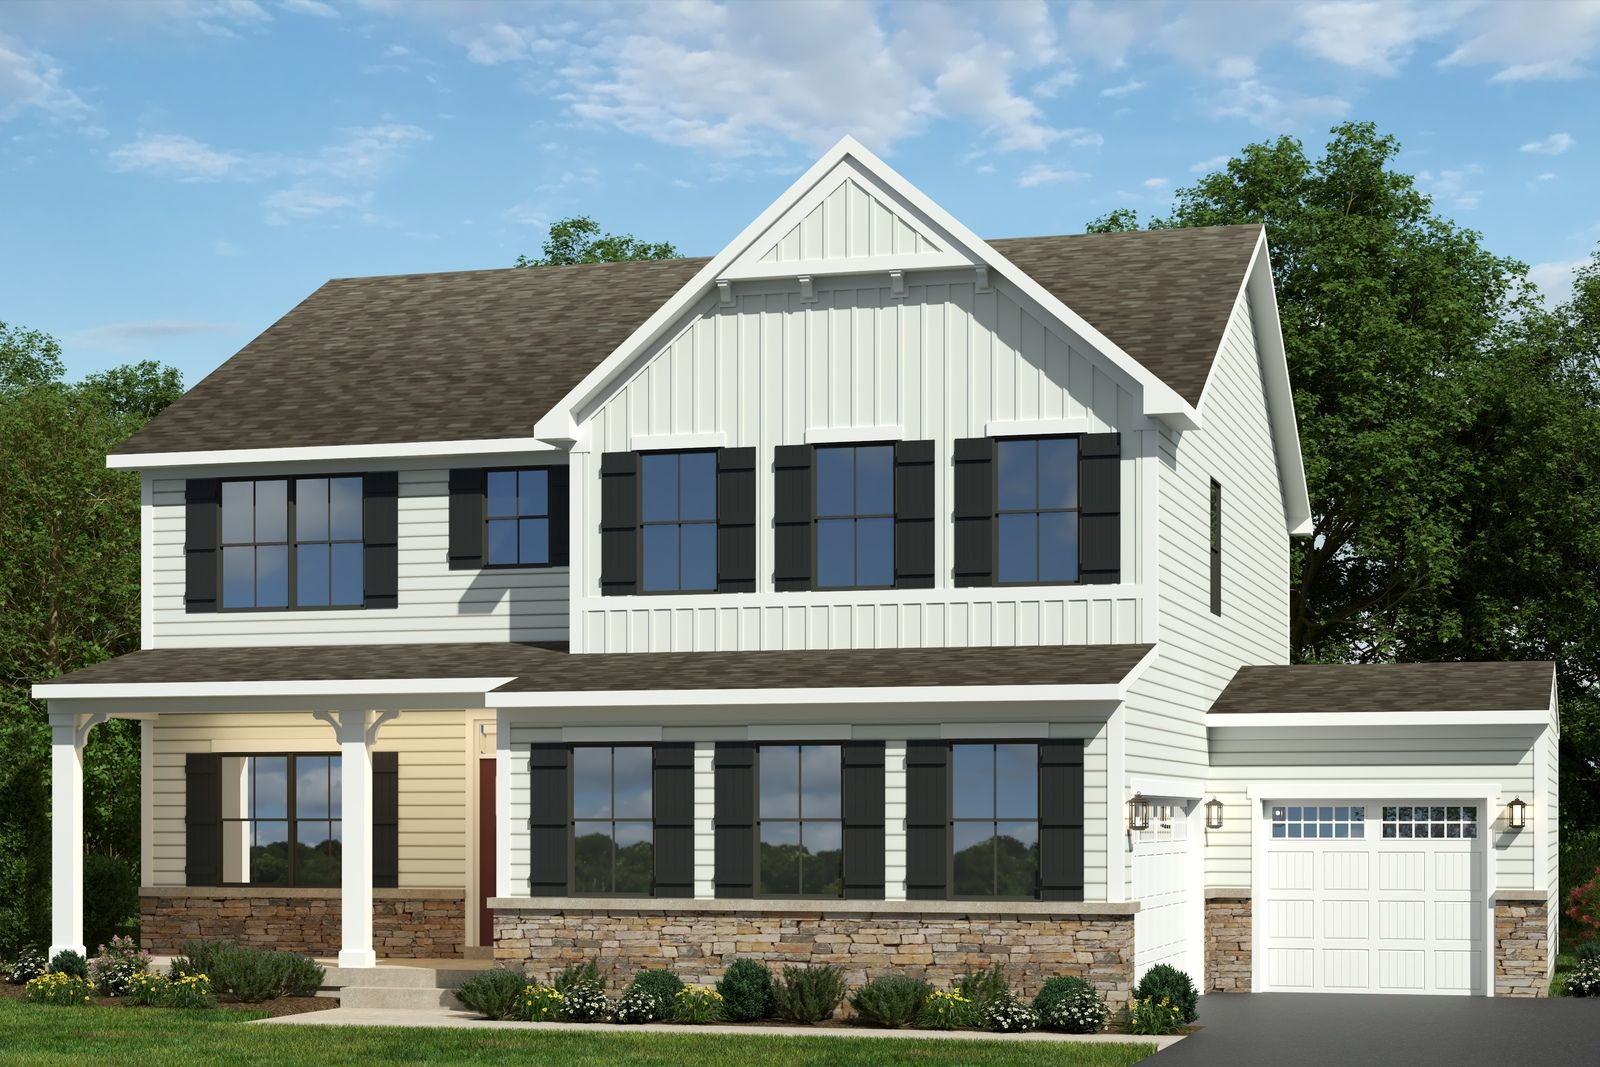 Welcome to Lafayette Meadow in South Fayette:The newest community in South Fayette with stunning views, up to 6 bedrooms, 3 car garages and located between Robinson and Southpointe.Click here toschedule an appointment.